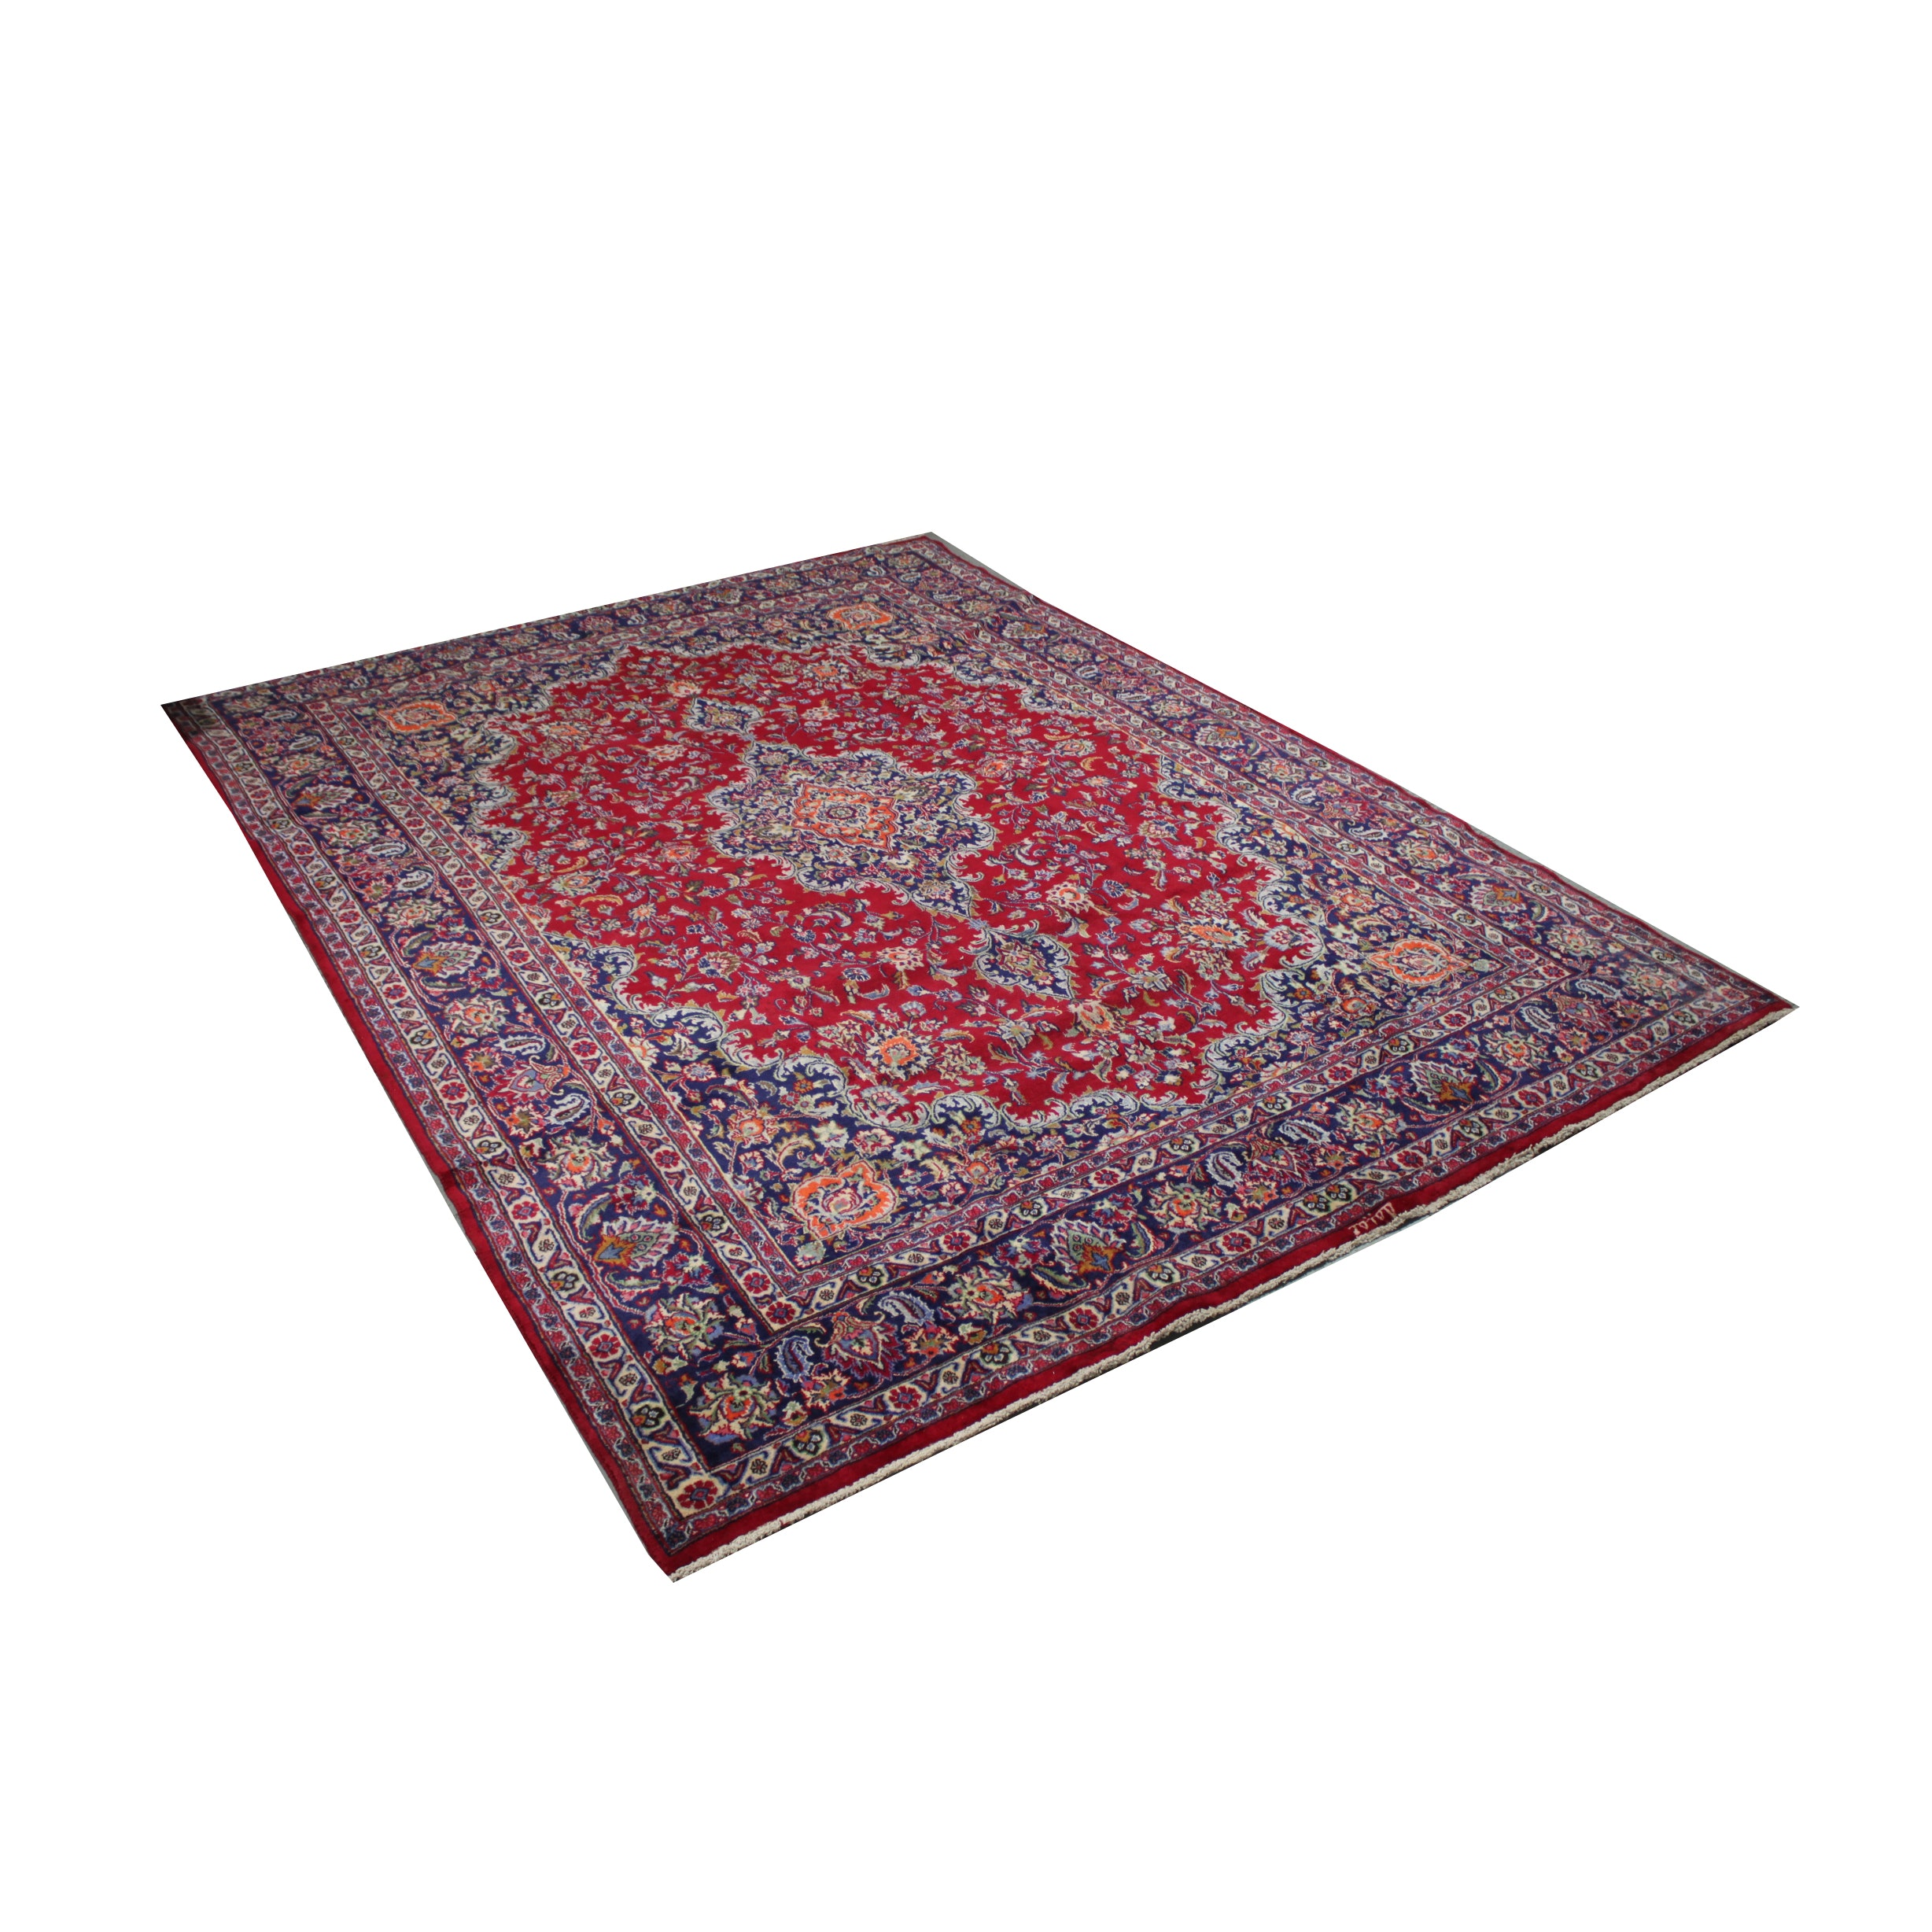 Hand-Knotted Signed Persian Mashhad Room Size Rug